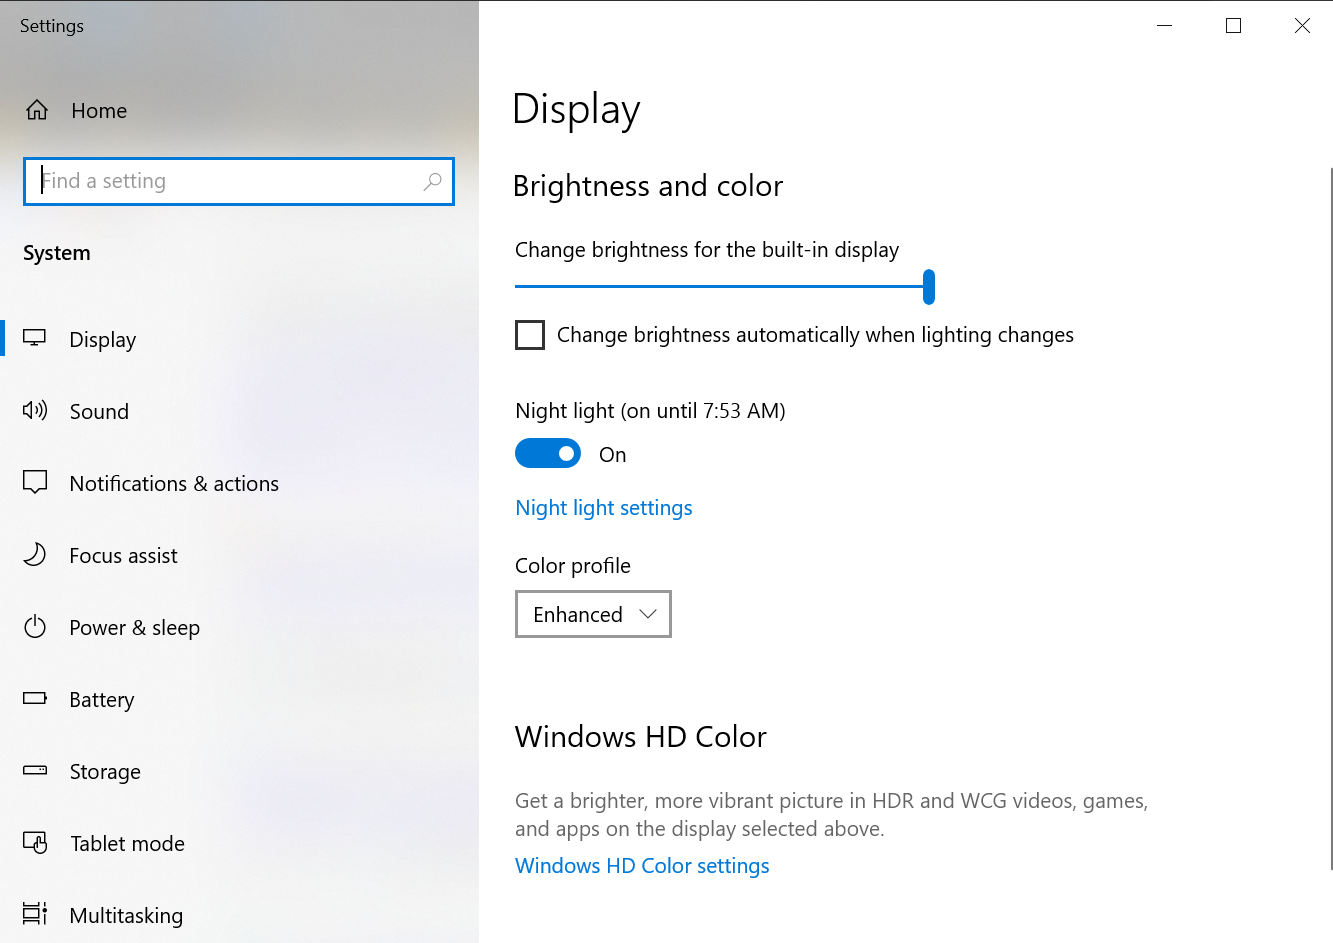 Turning on night light in Display settings.